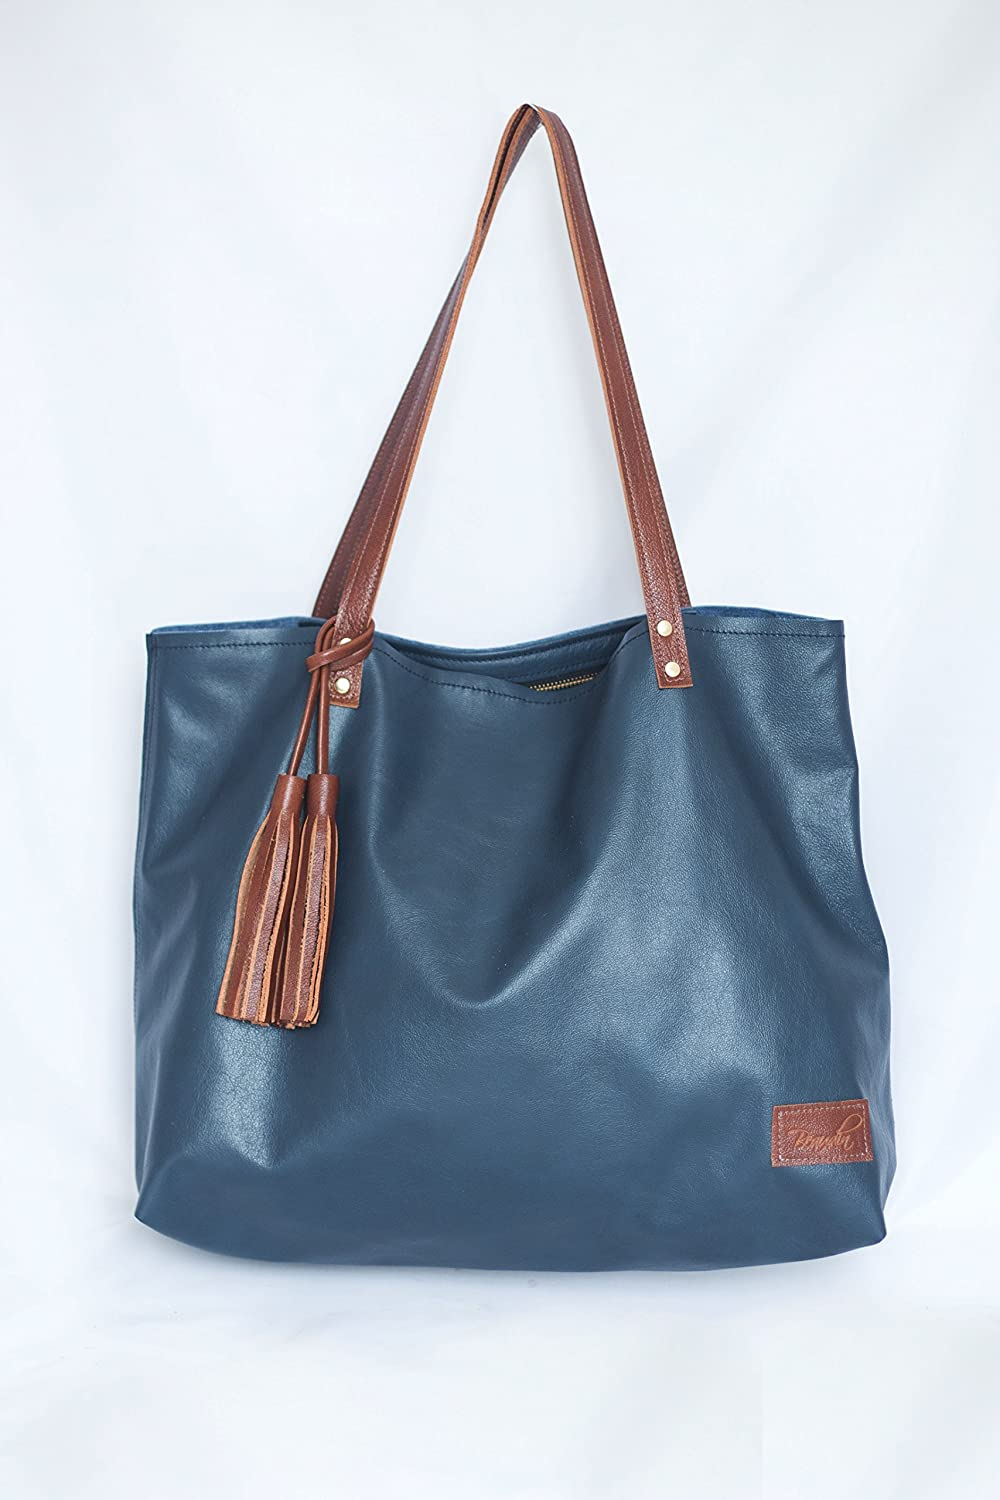 3cd9d9ba63 Amazon.com  Navy Leather Tote - Large Leather Tote Bag for Work ...